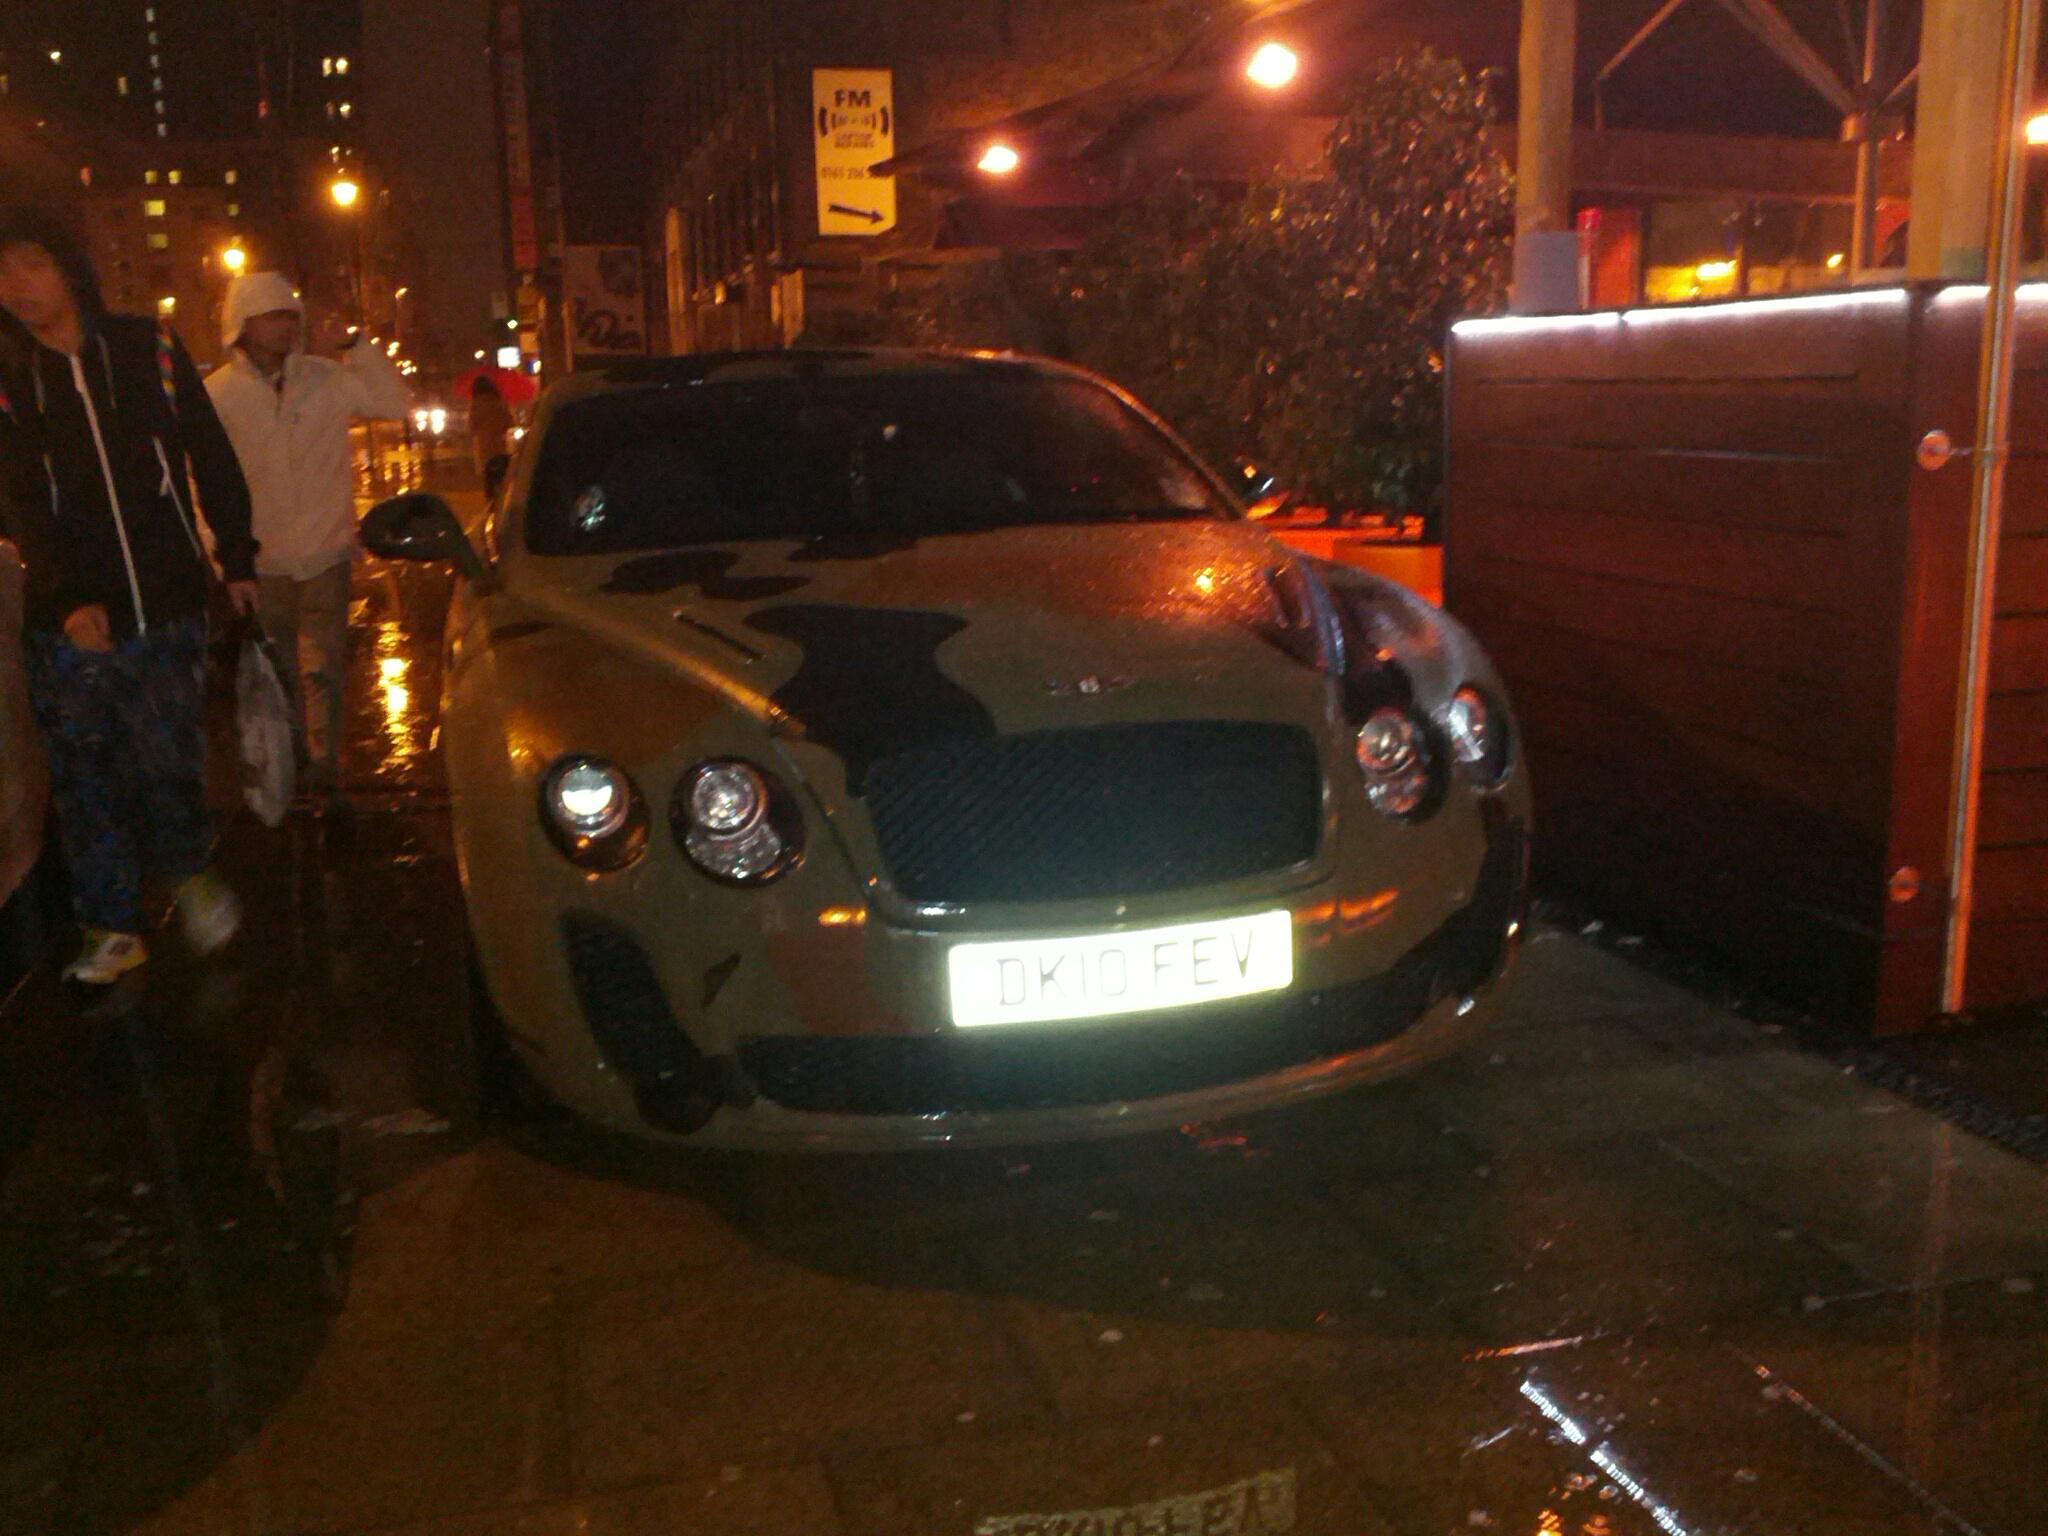 EXCLUSIVE Pictures: Police speak to Mario Balotelli after he parks on the pavement